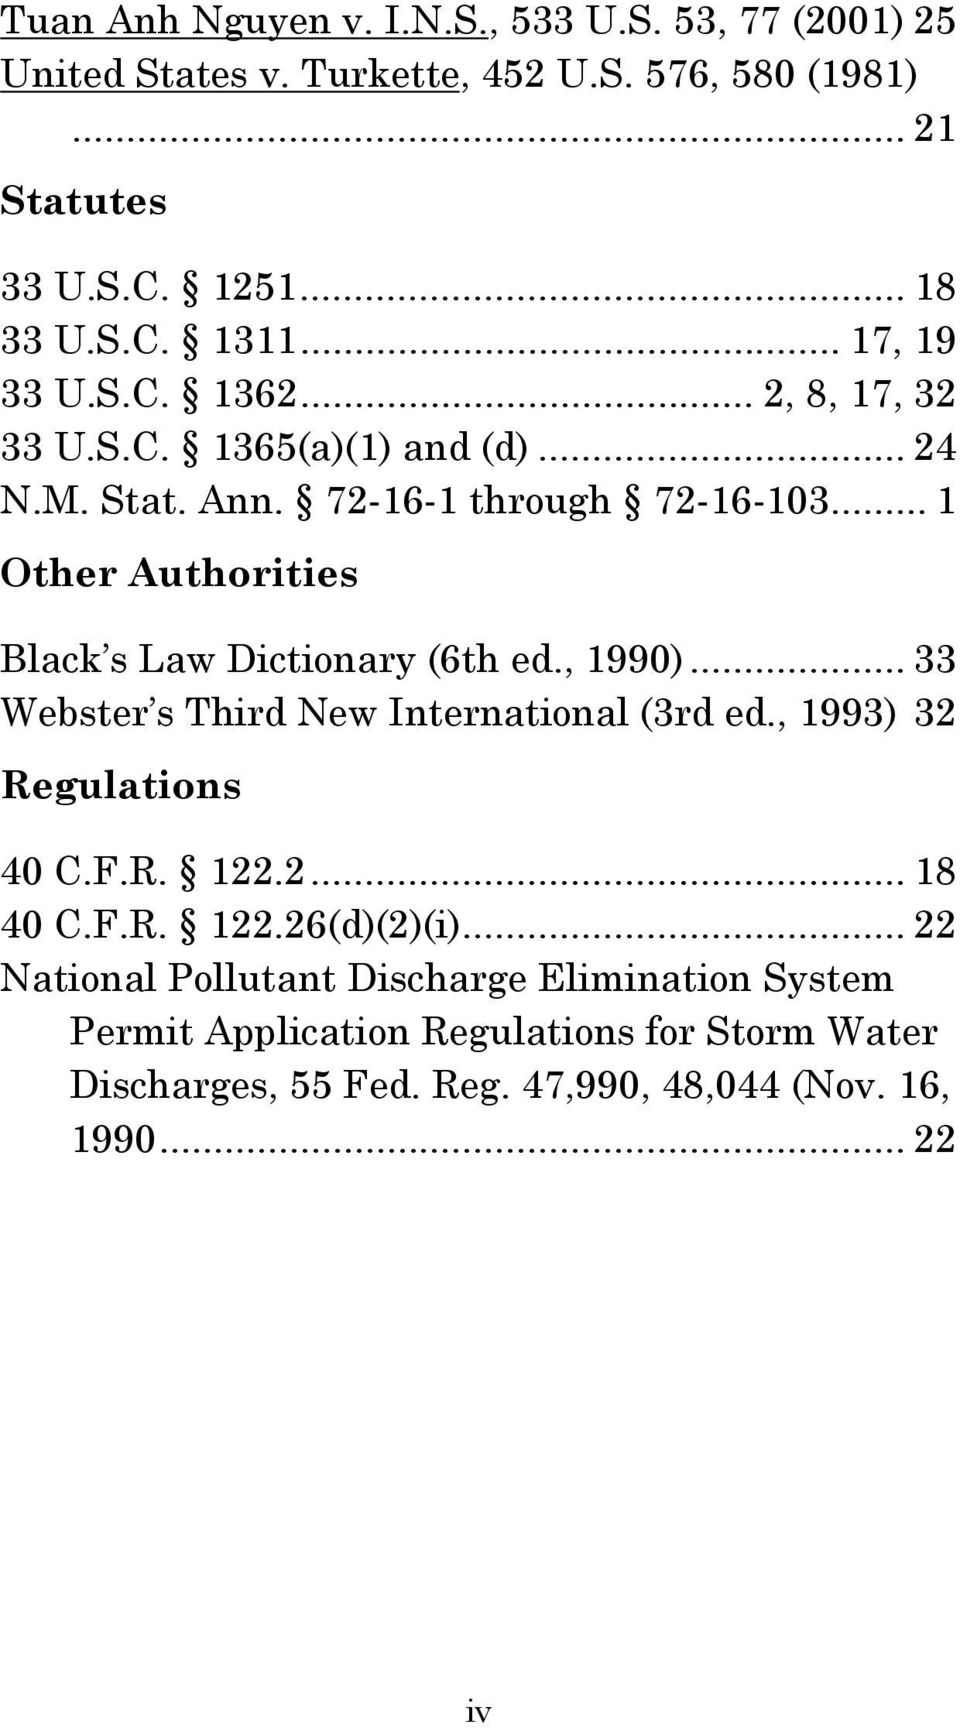 .. 1 Other Authorities Black s Law Dictionary (6th ed., 1990)... 33 Webster s Third New International (3rd ed., 1993) 32 Regulations 40 C.F.R. 122.2... 18 40 C.